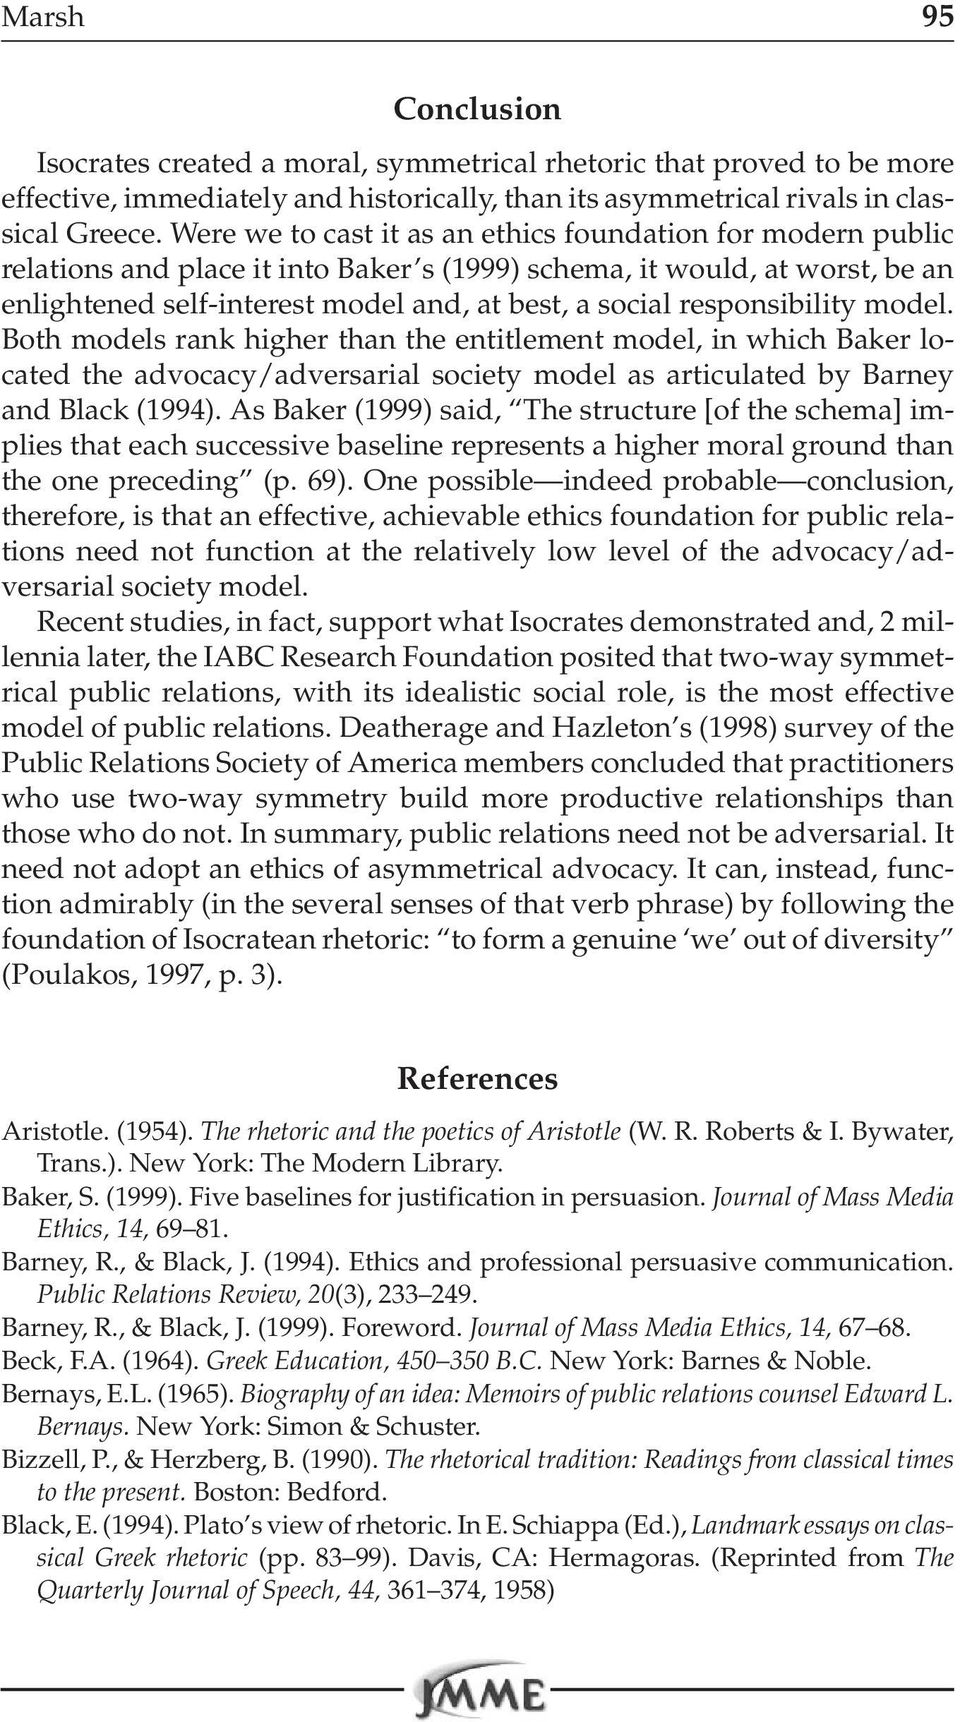 responsibility model. Both models rank higher than the entitlement model, in which Baker located the advocacy/adversarial society model as articulated by Barney and Black (1994).